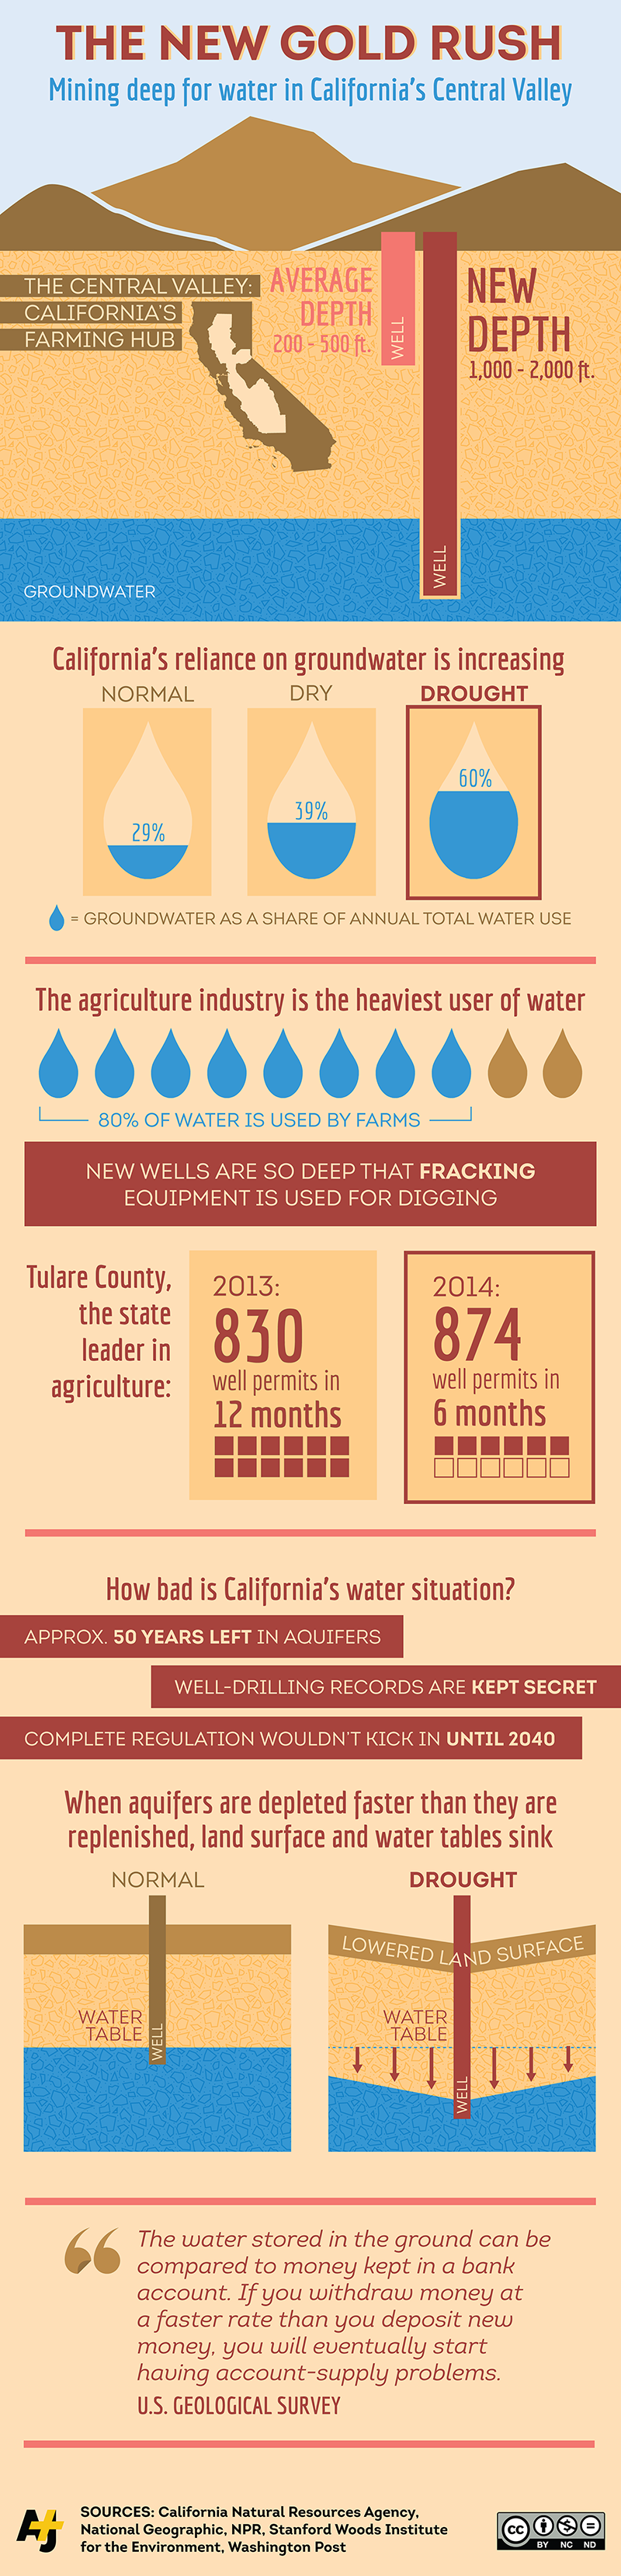 infographic_californiawater_med_800width.png